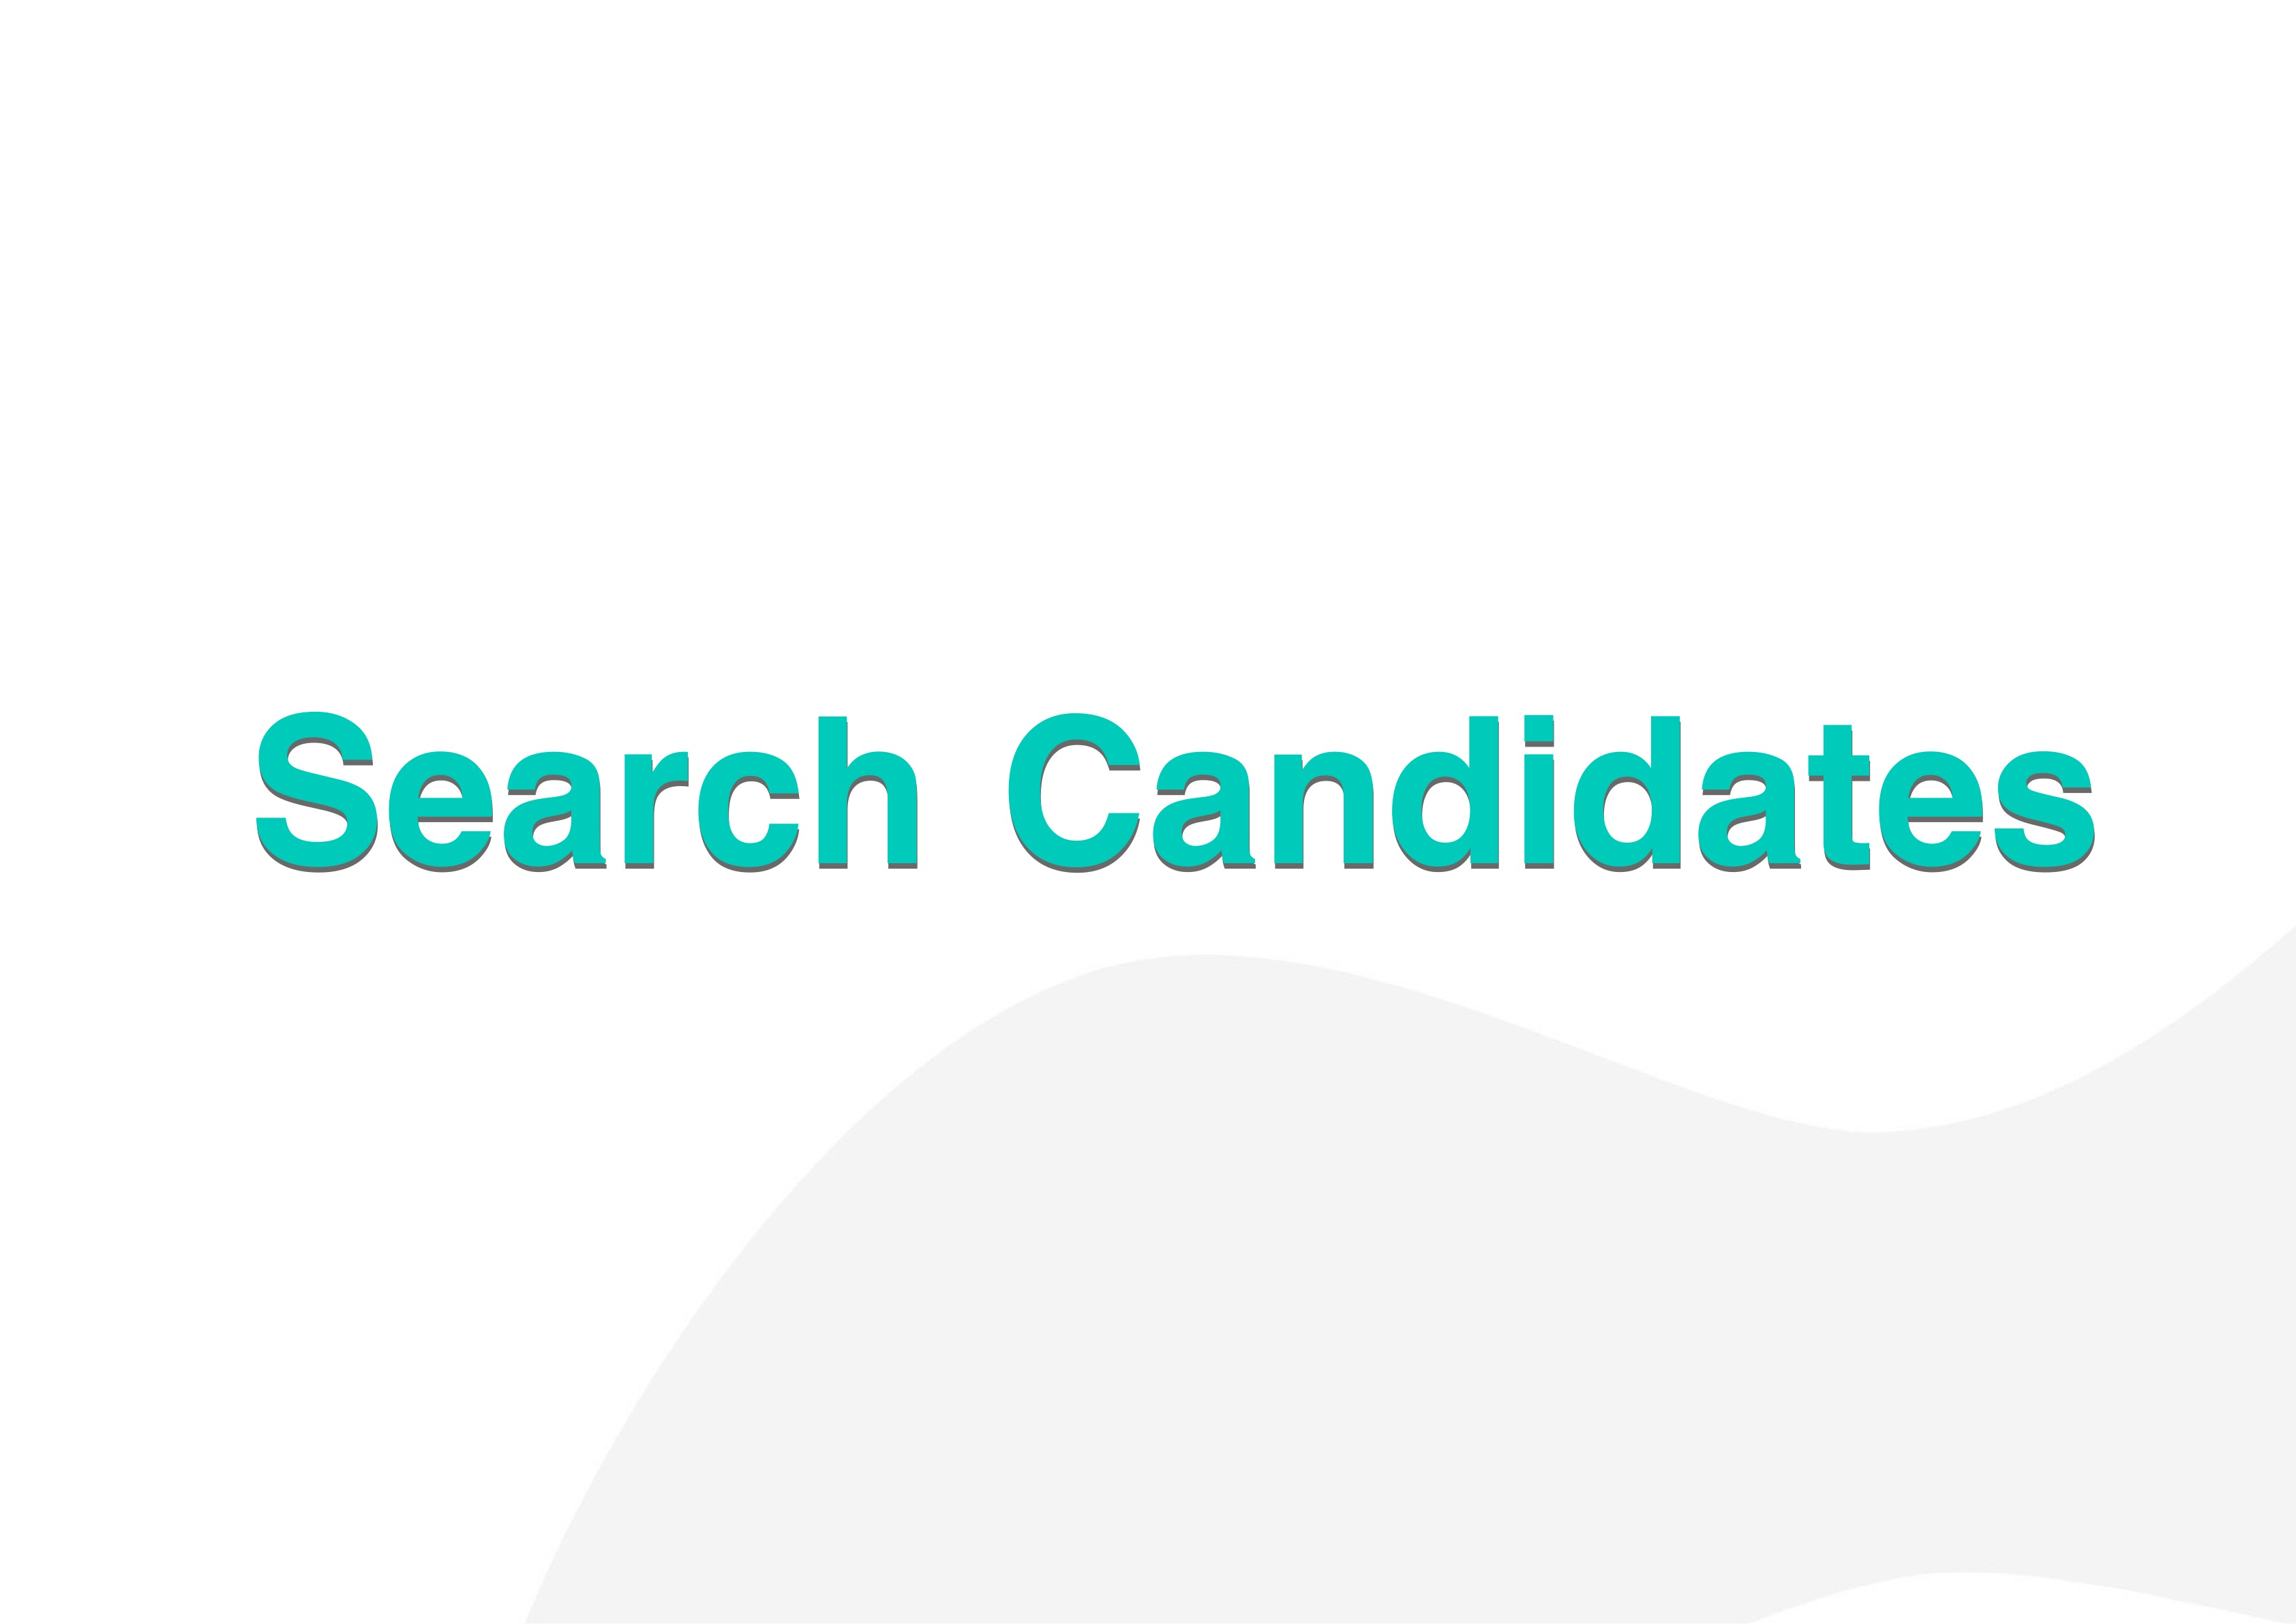 Search for Candidates